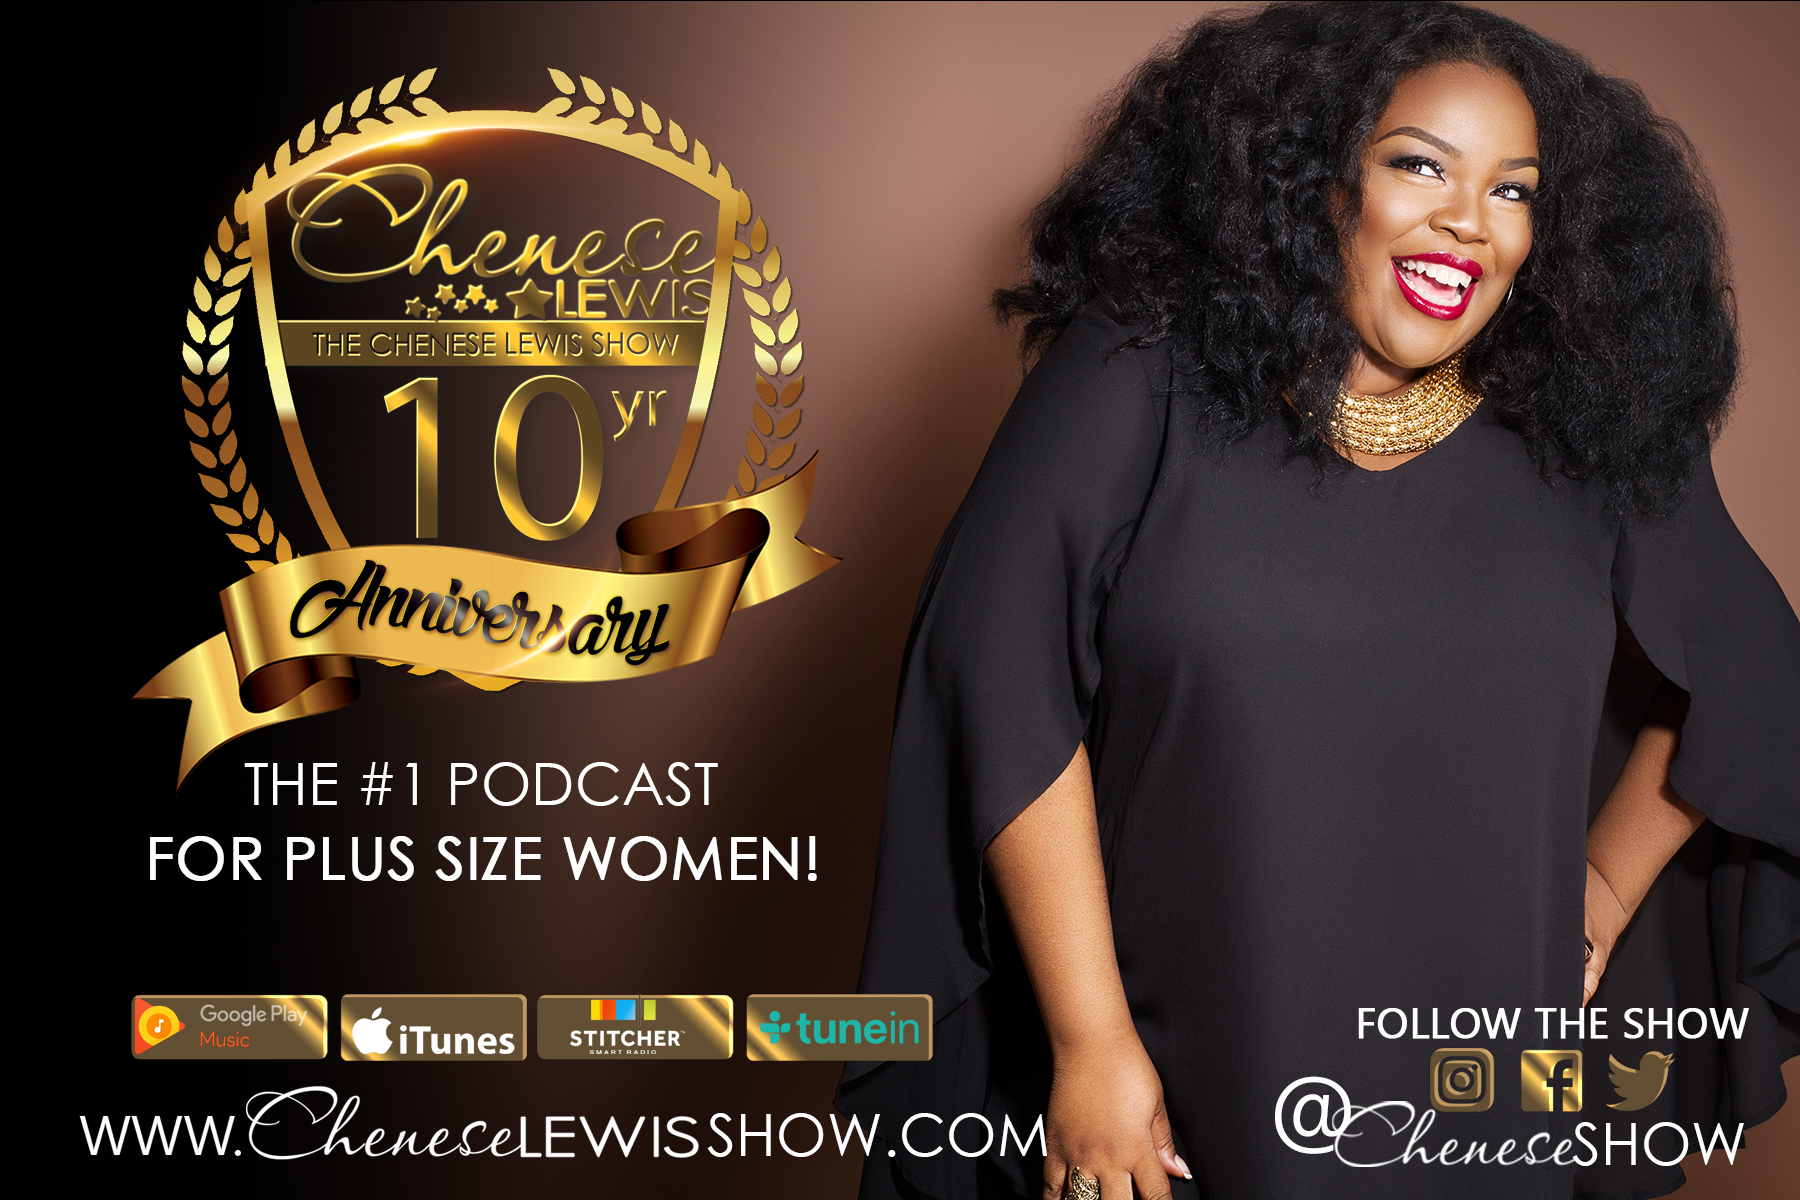 10 facts to know about Chenese Lewis, Plus Size Icon